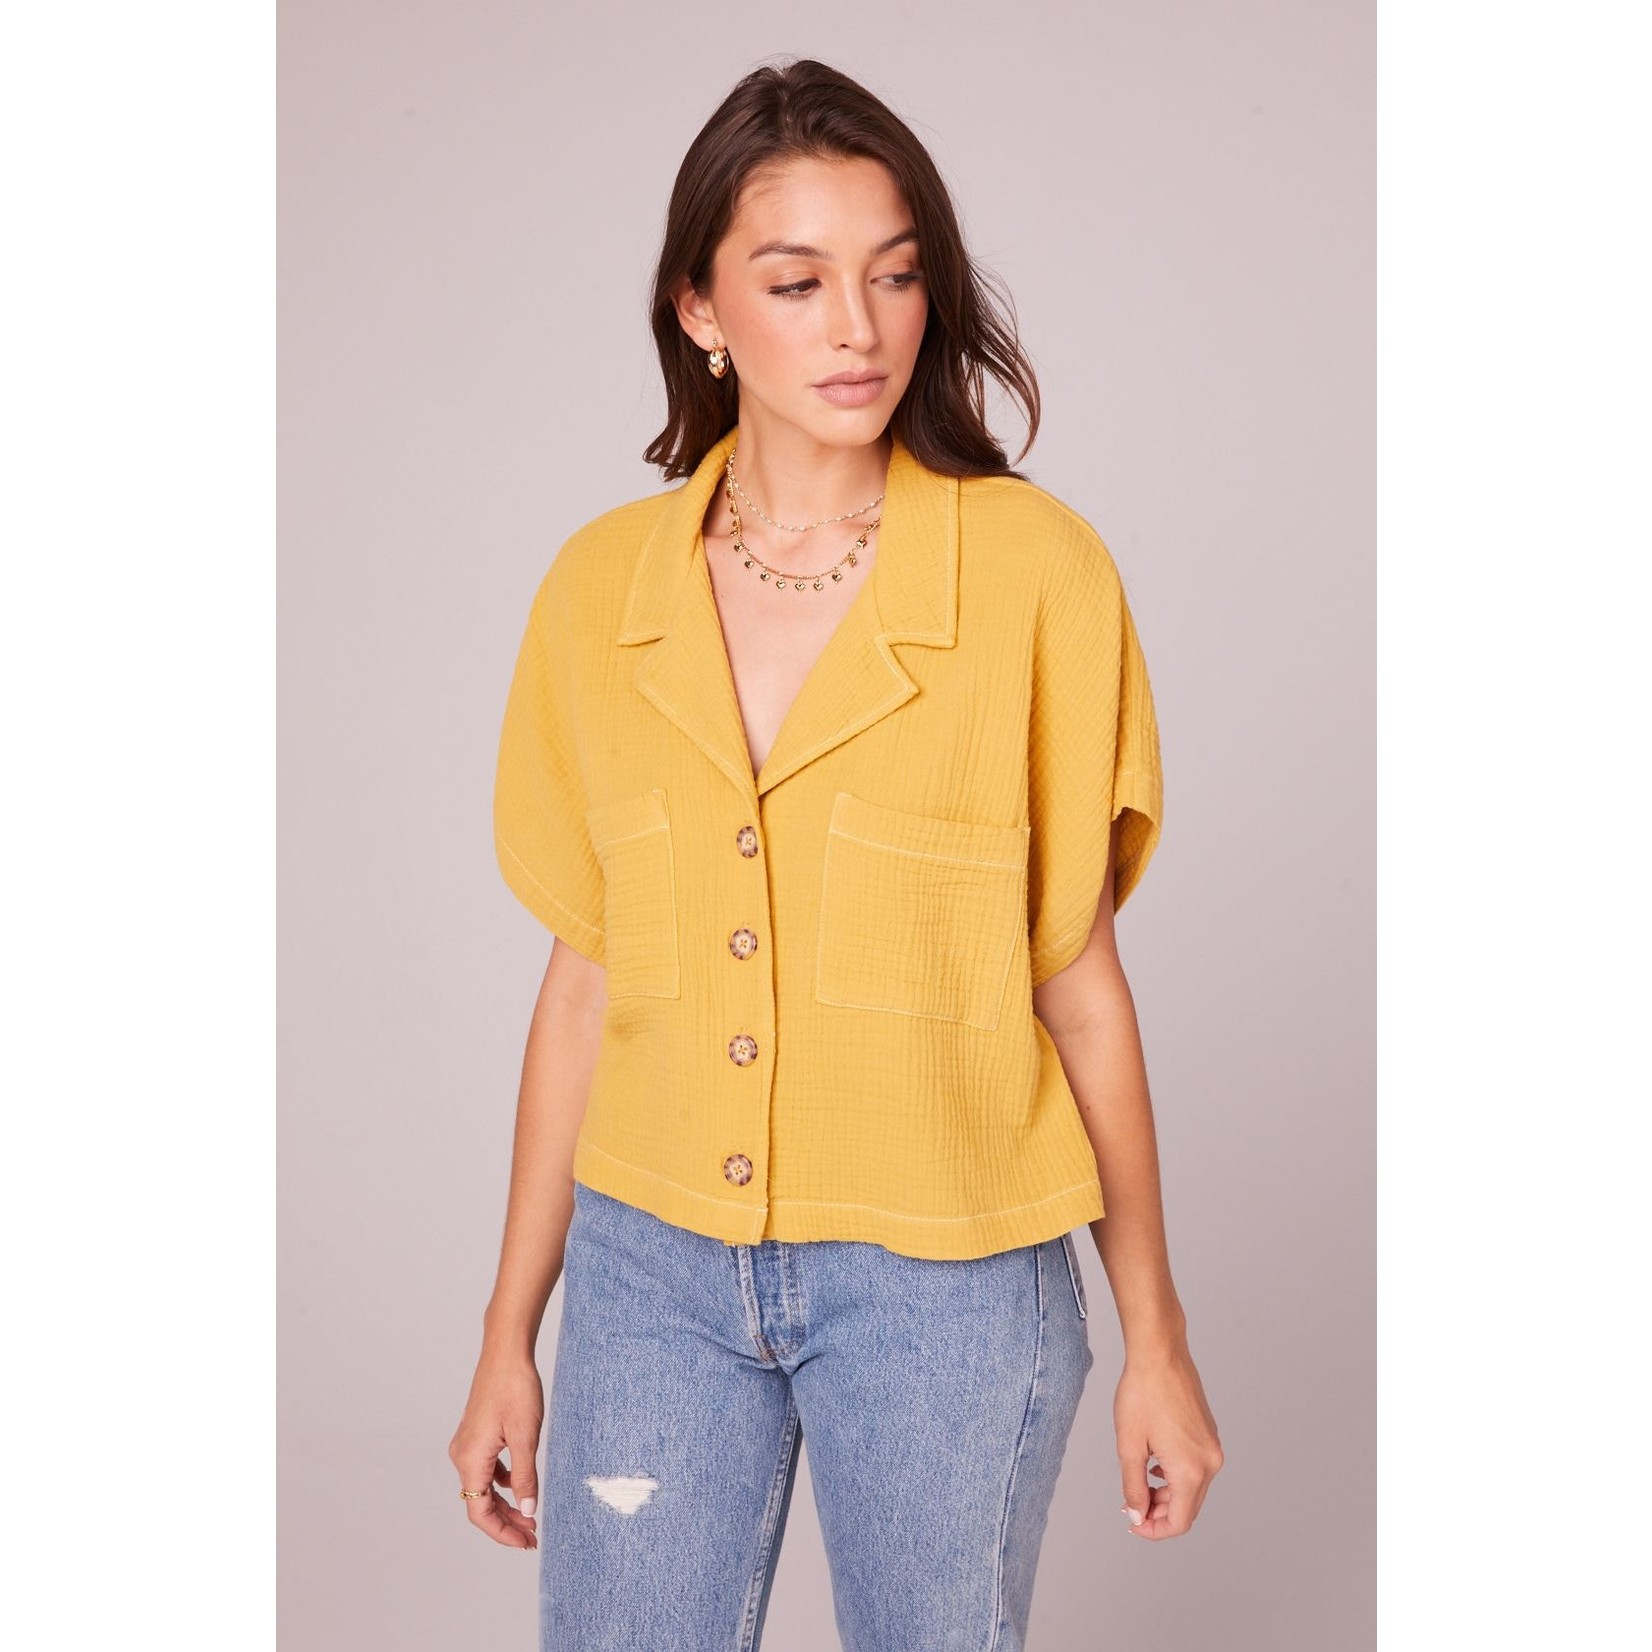 B.O.G. Collective Jules Top